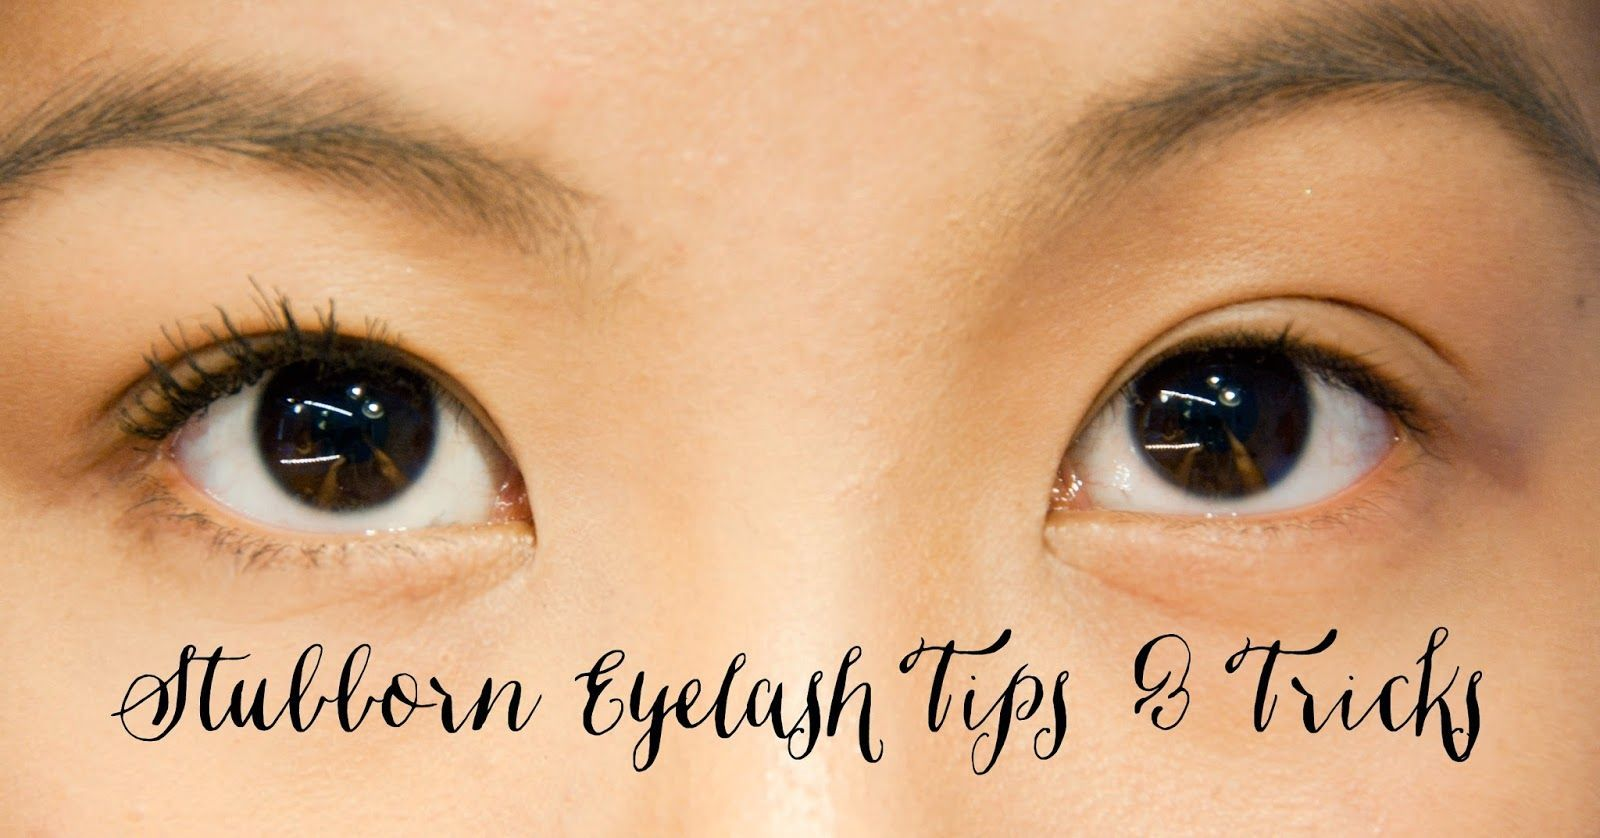 How To Make Stubborn Eyelashes Work Using A Waterproof Mascara